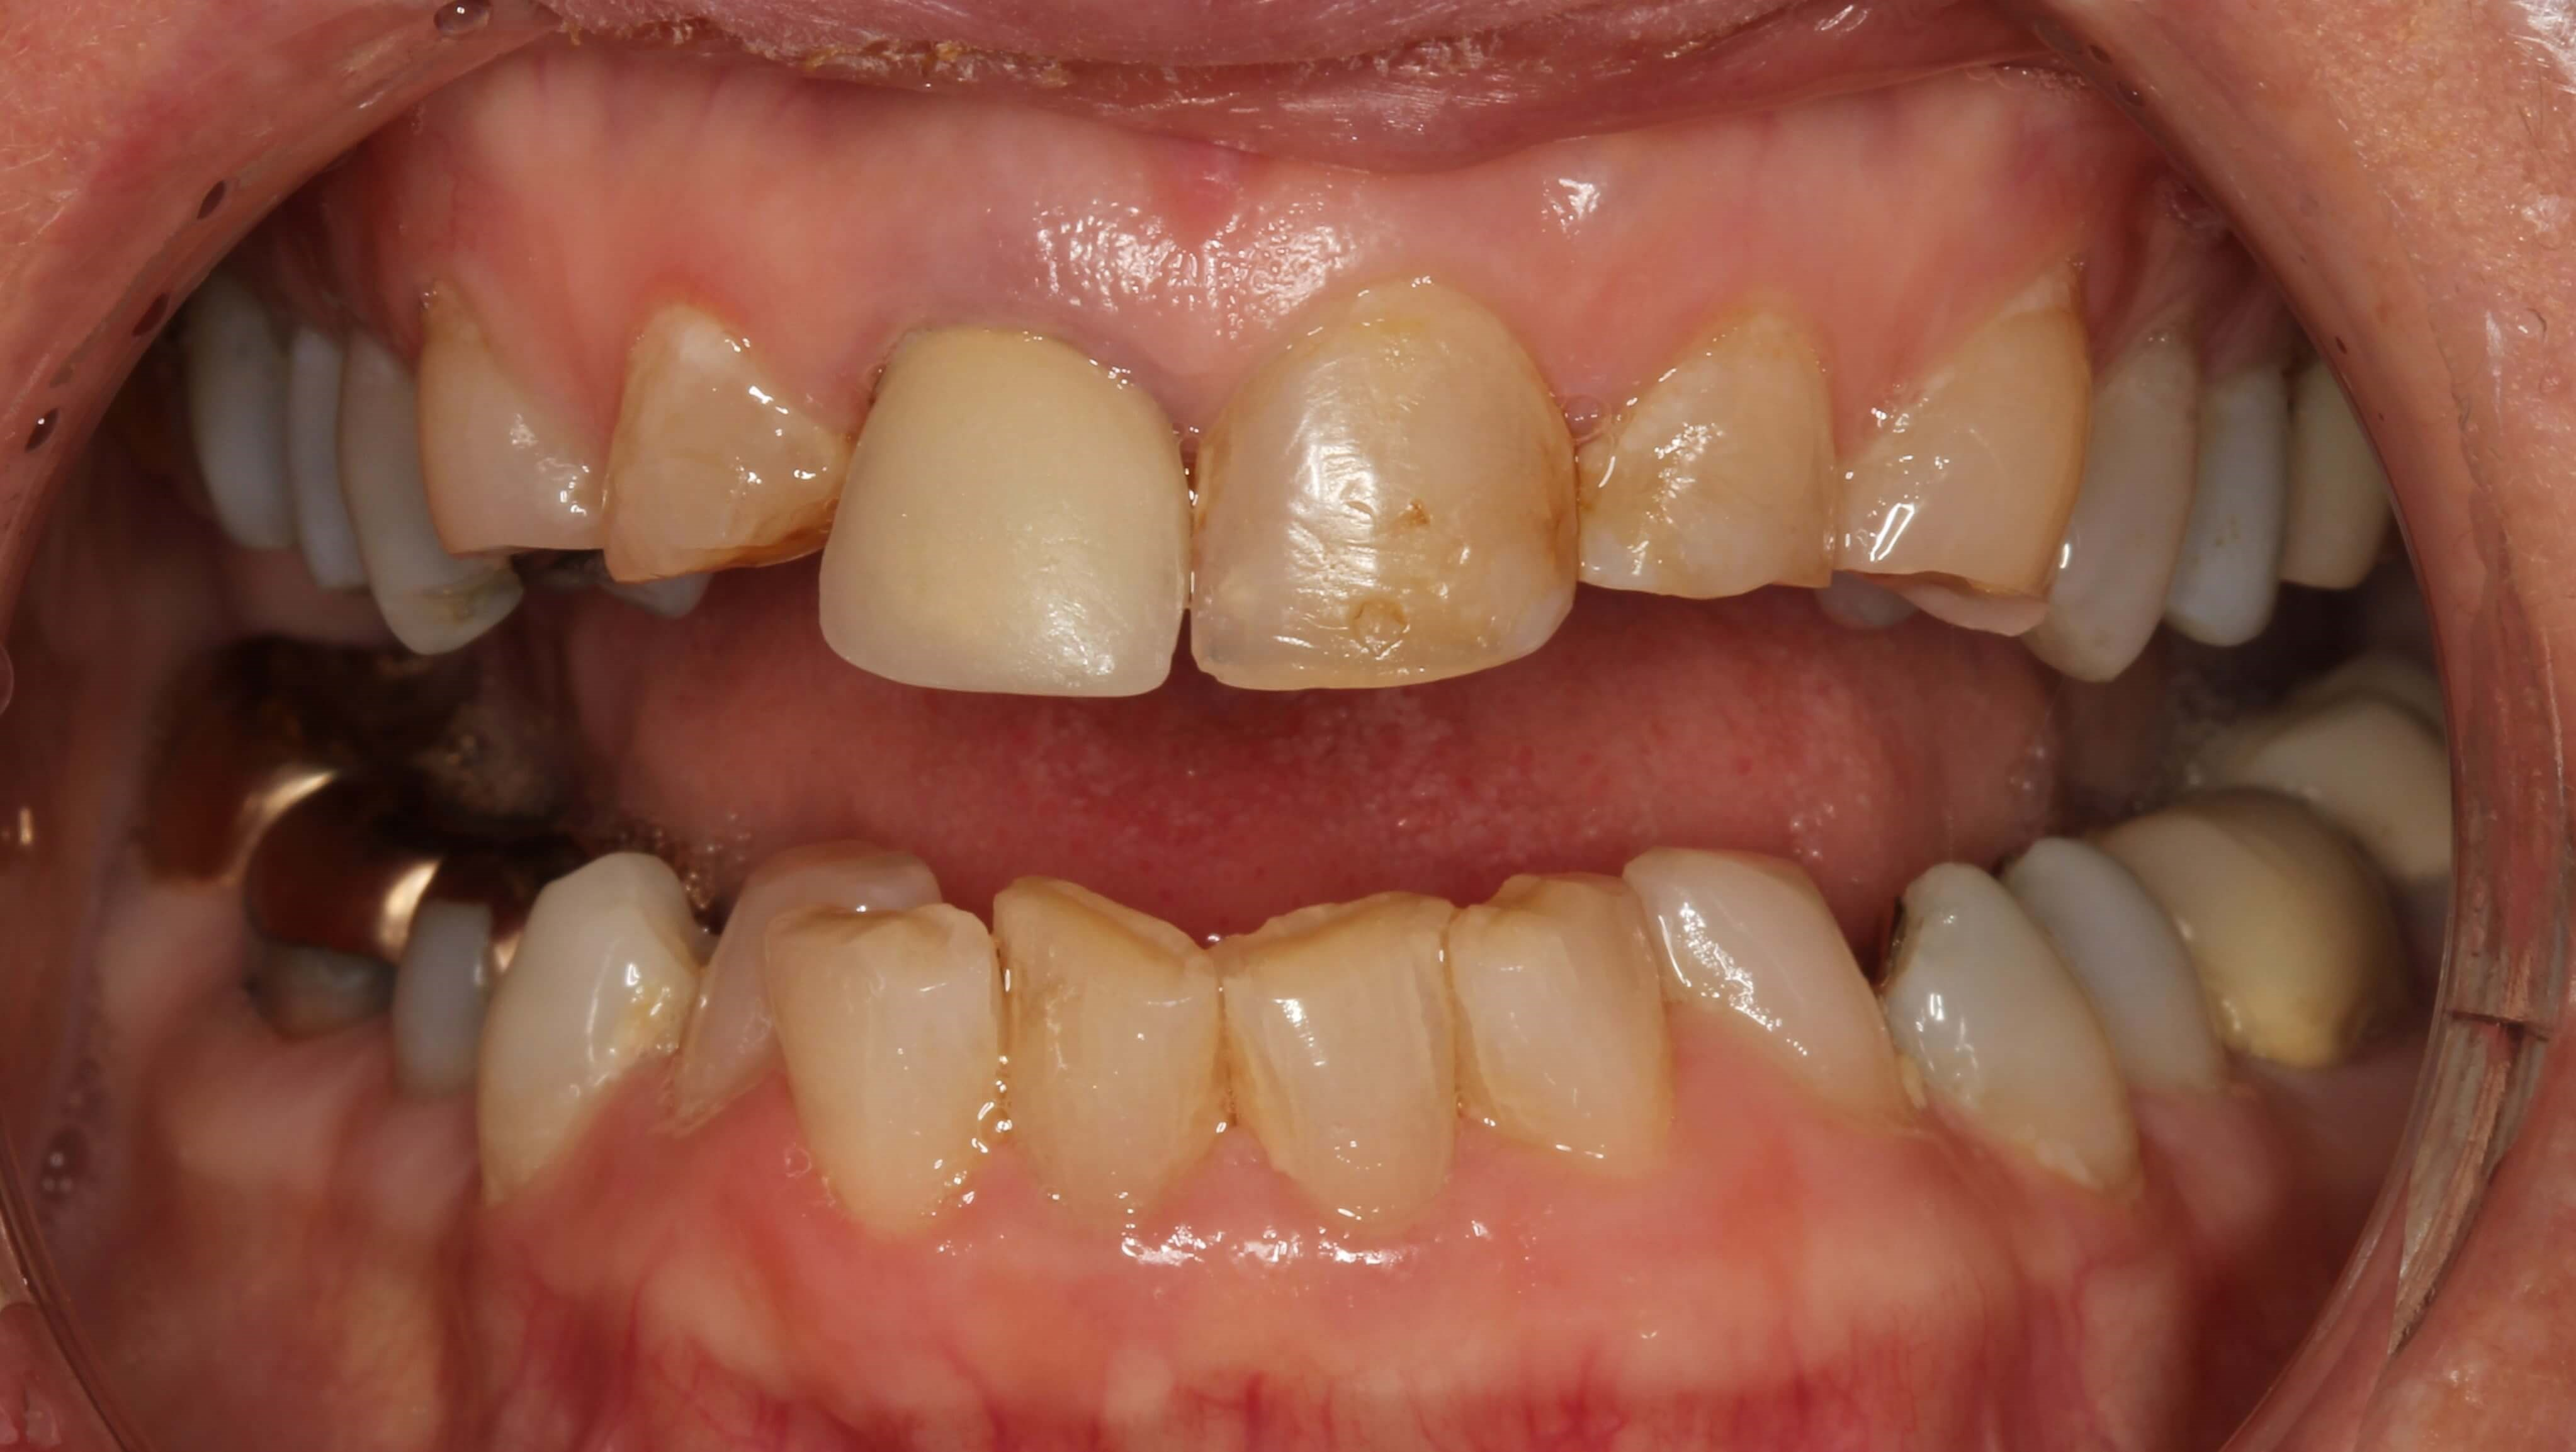 Porcelain Crowns at SmilesNY Before